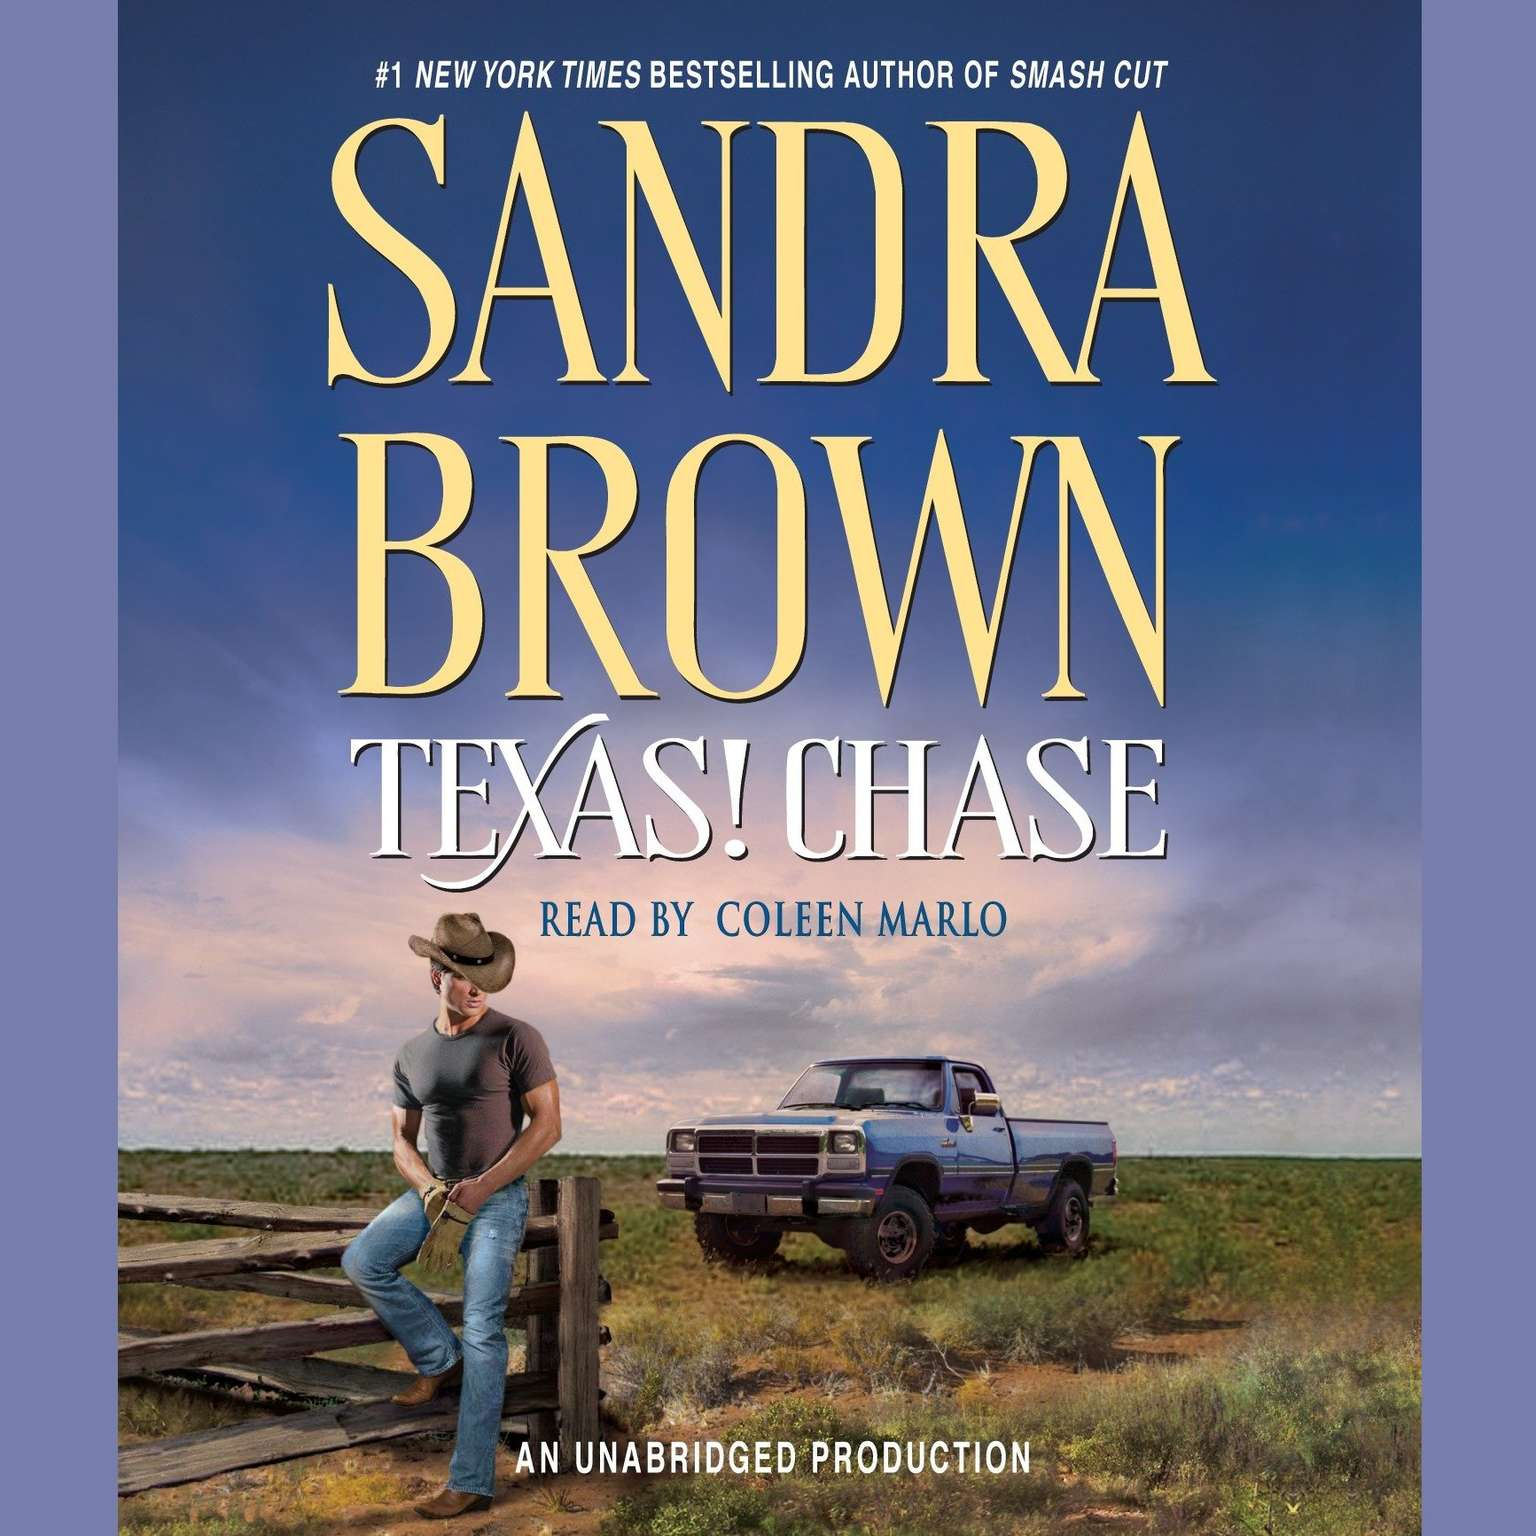 Printable Texas! Chase Audiobook Cover Art